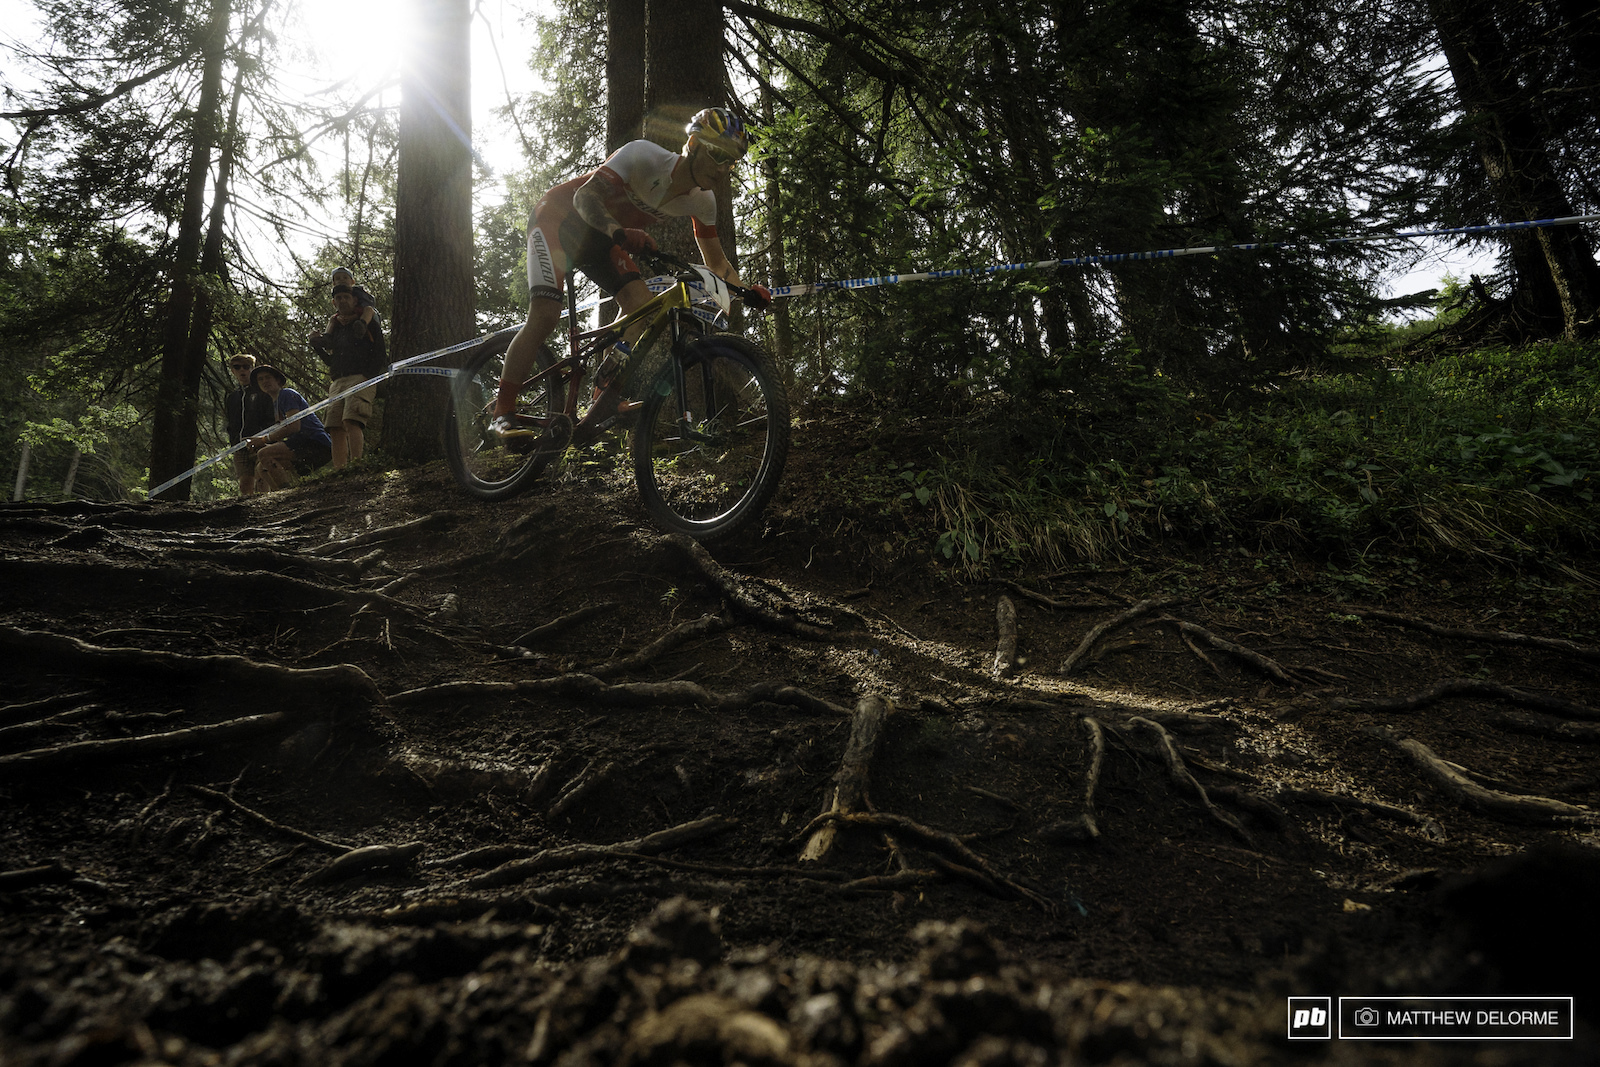 Simon Andreassen Takes the high line to avoid the roots.